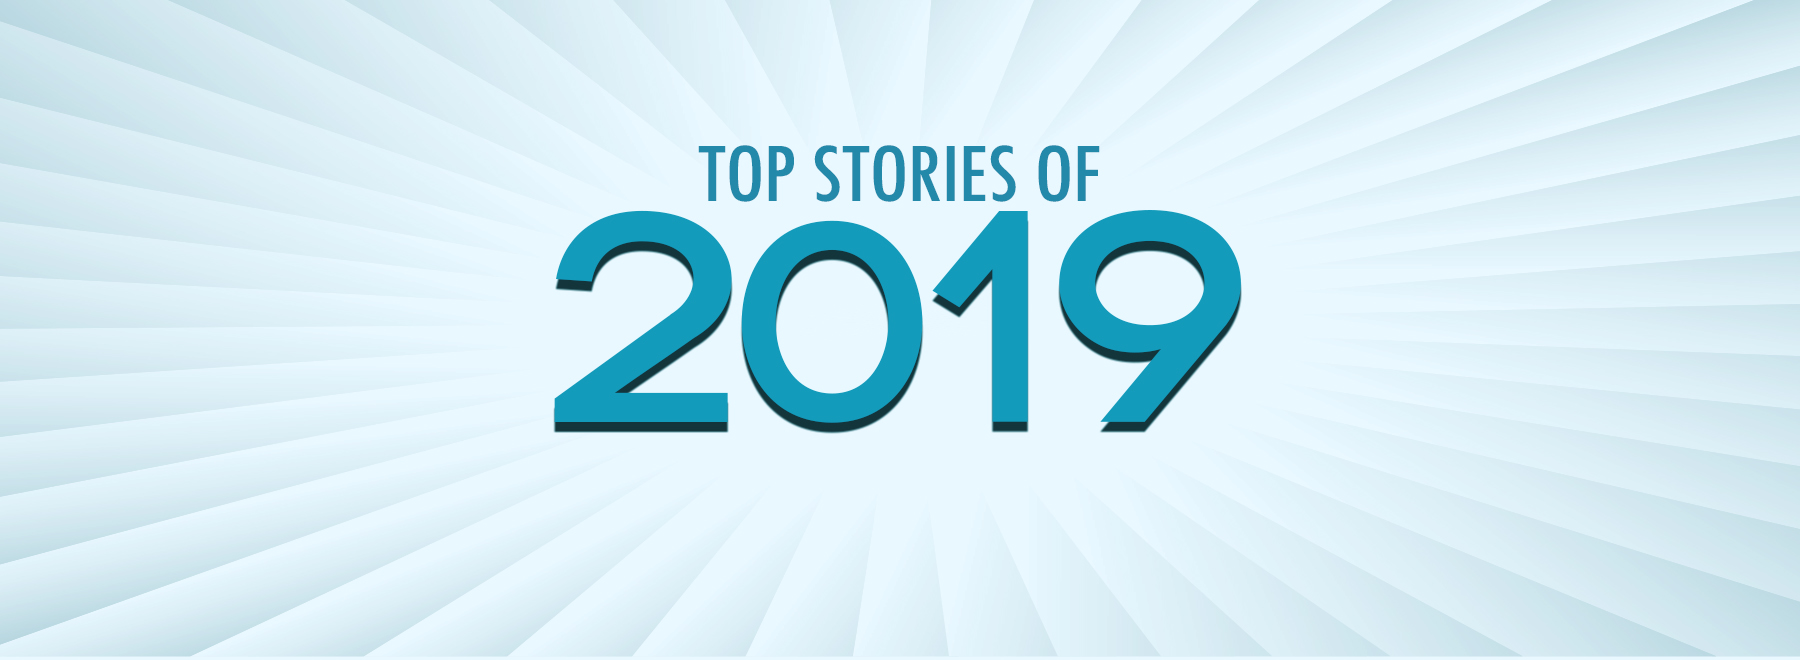 Top Stories of 2019